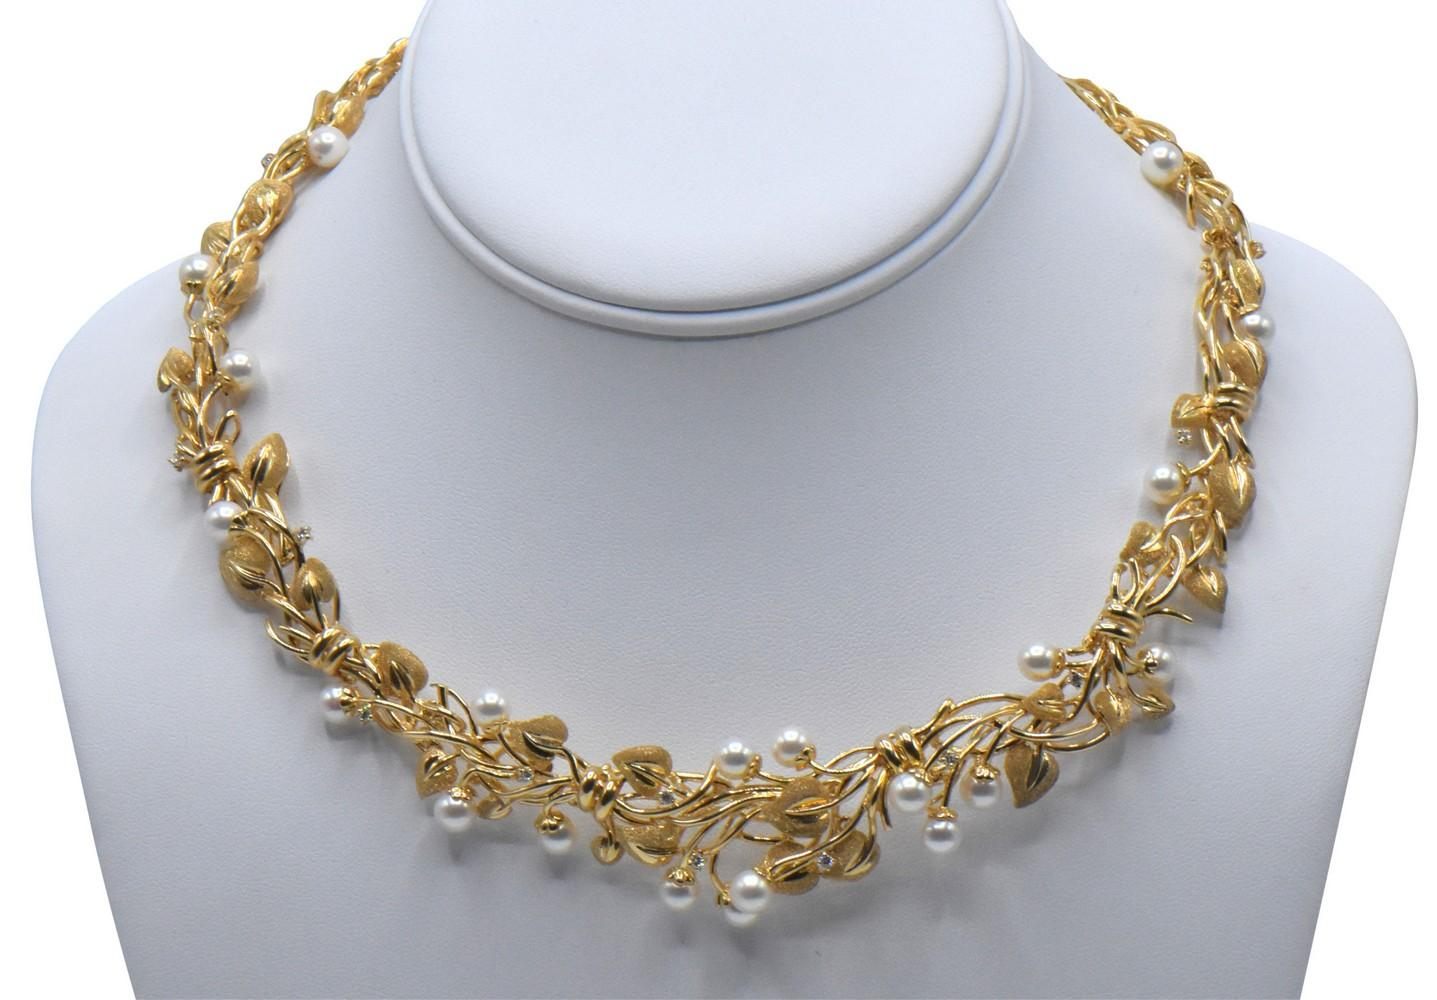 14K Yellow Gold, Diamond, & Pearl Necklace